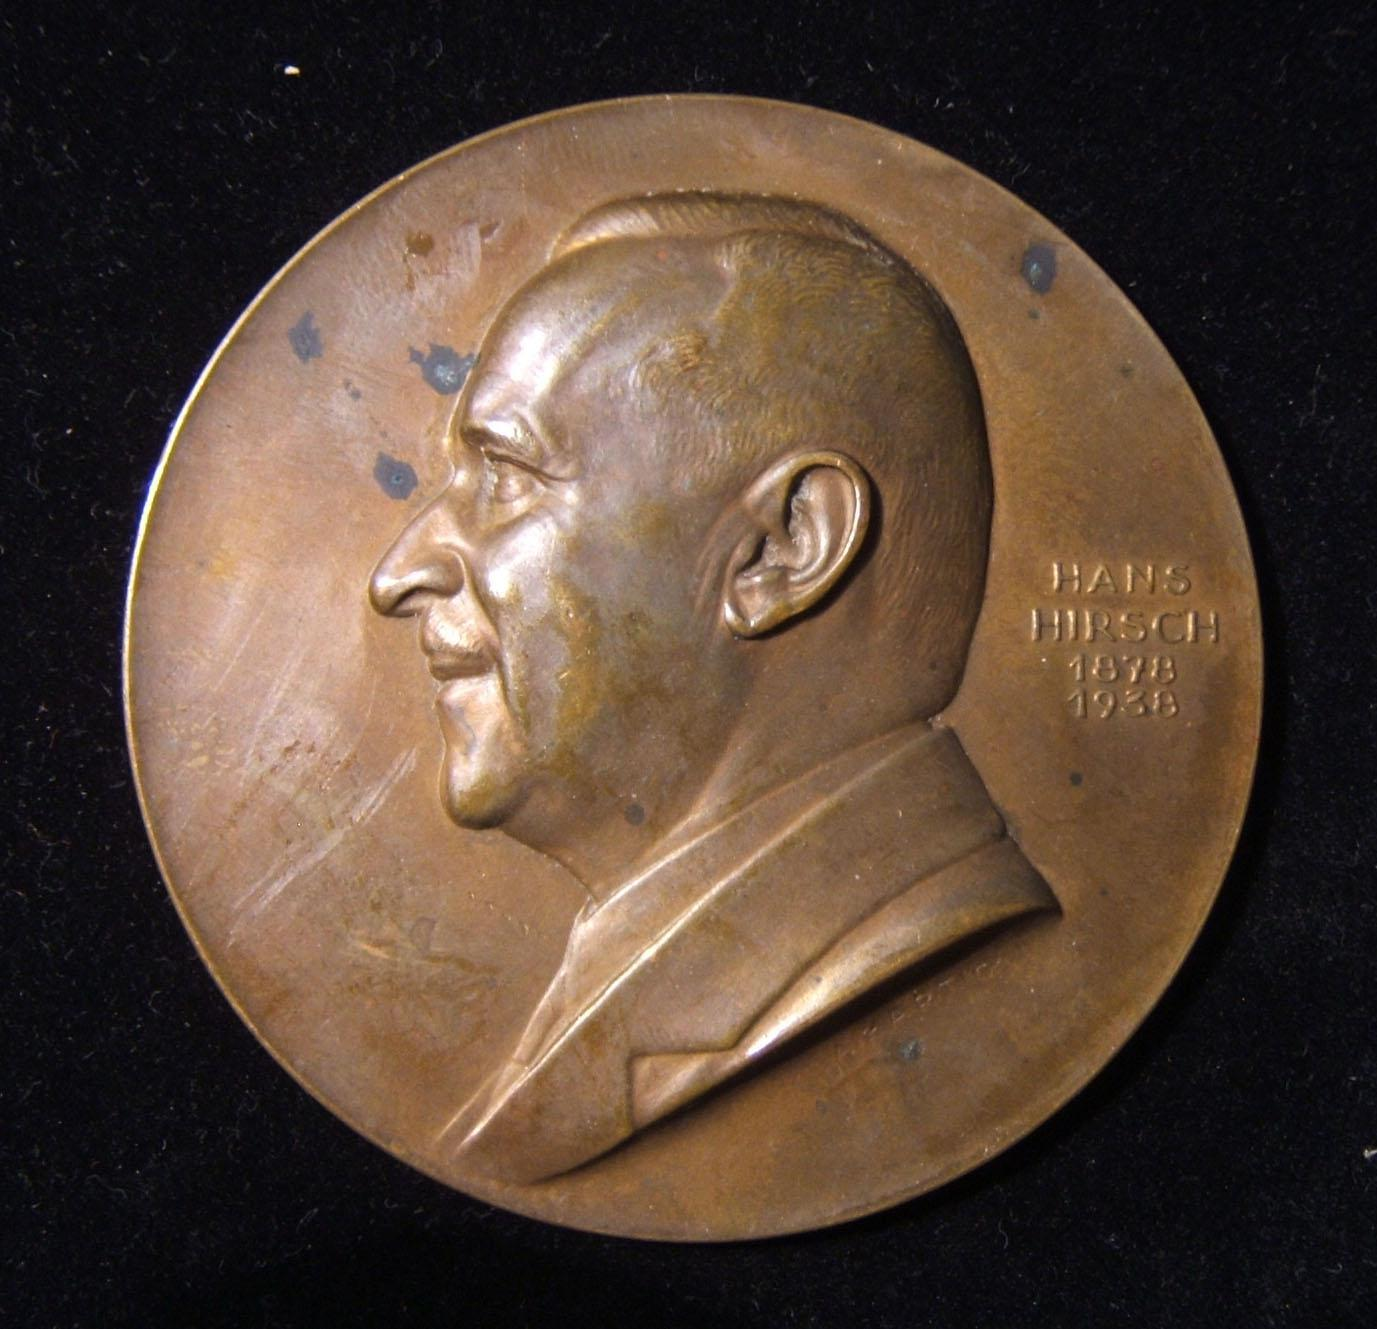 Austria: Hans Hirsch 60th birthday uniface medal (1878-1938), in bronze; by Arnold Hartig (1878-1972); size: 70mm; weight: 117.85g. Medal depicts left-facing bust of Hirsch (1878-1